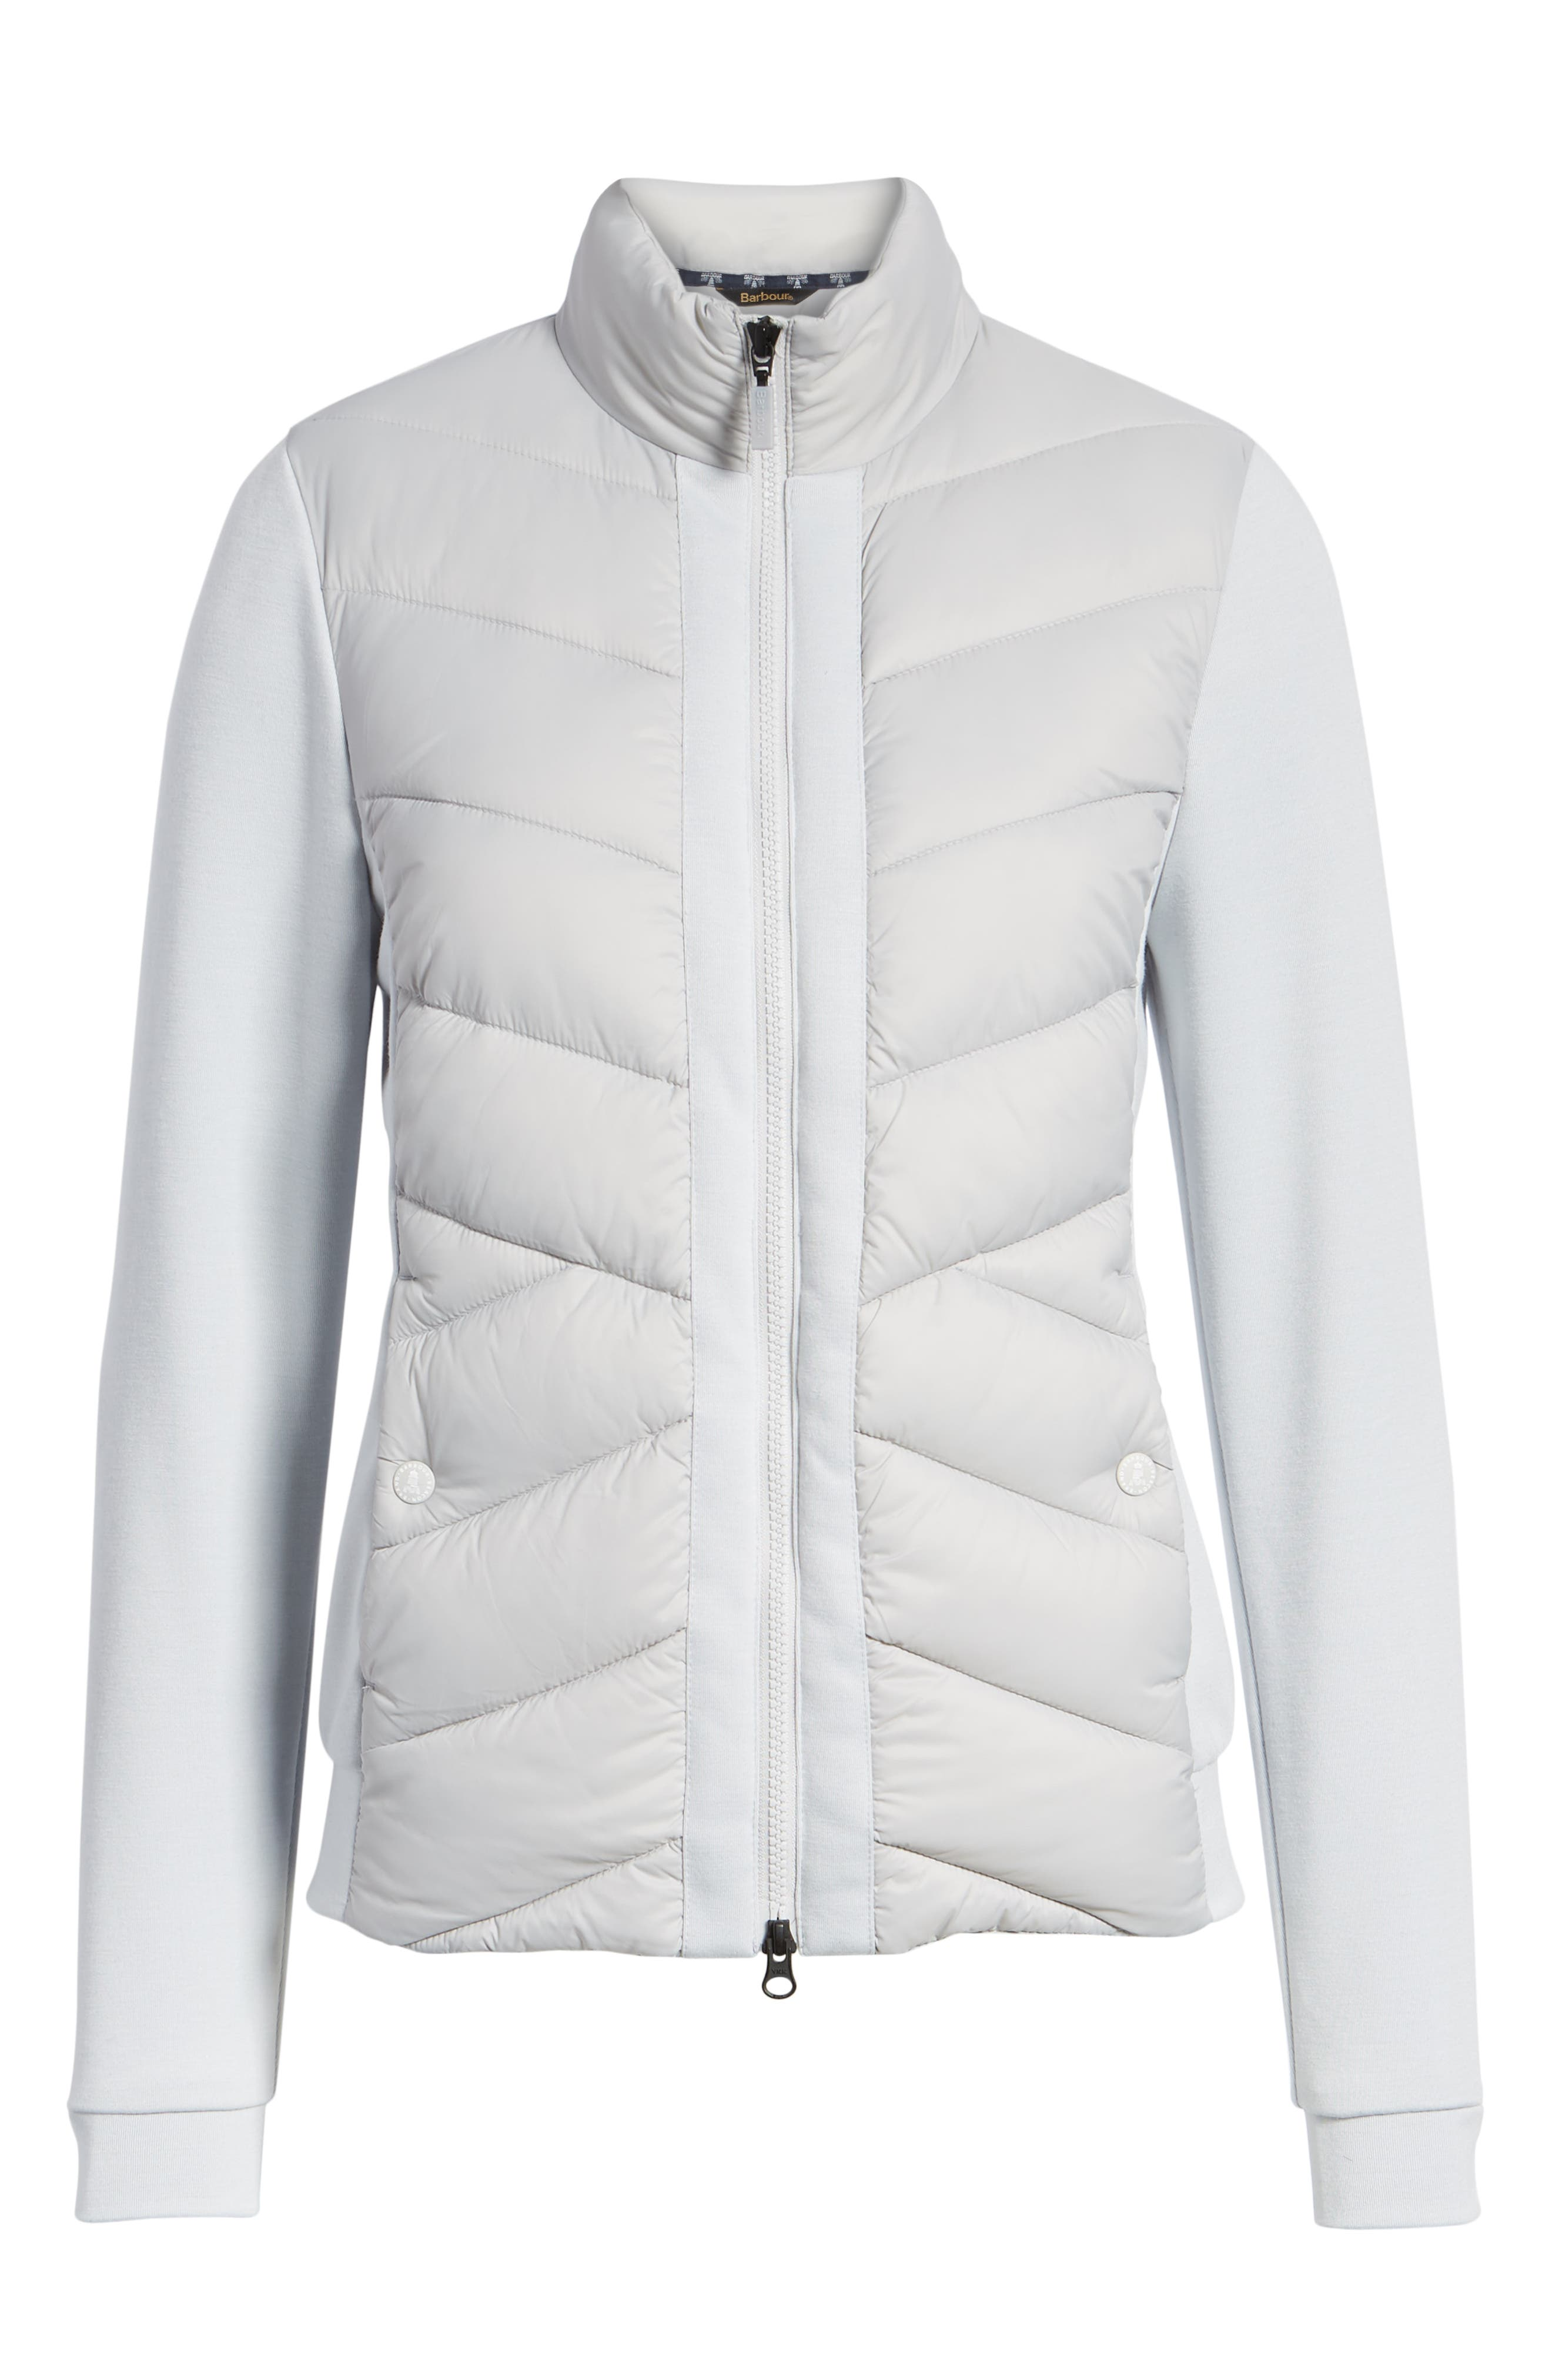 BARBOUR,                             Hirsel Chevron Quilted Sweater Jacket,                             Alternate thumbnail 5, color,                             ICE WHITE/ ICE WHITE MARL